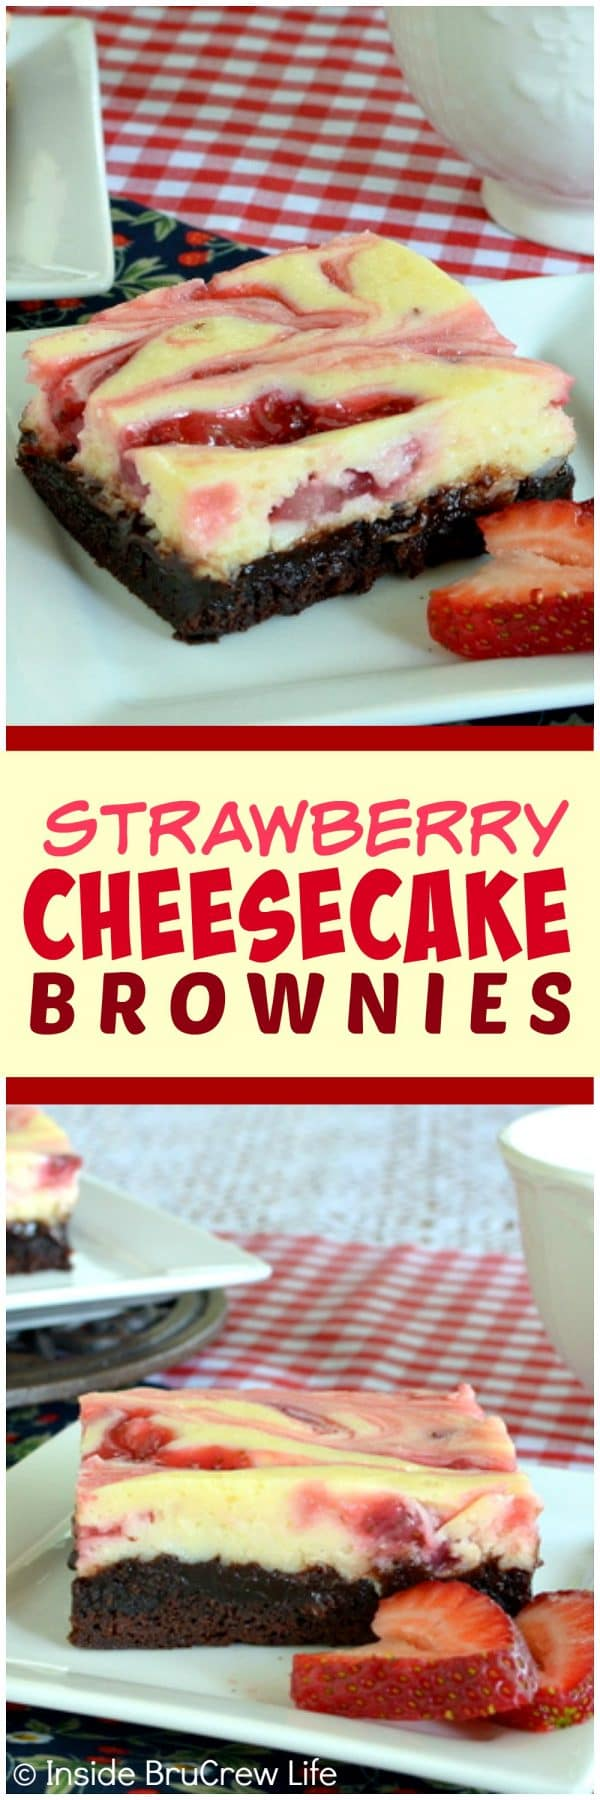 Strawberry Cheesecake Brownies - swirls of homemade strawberry pie filling and creamy cheesecake make these brownies a great dessert recipe for any party or picnic